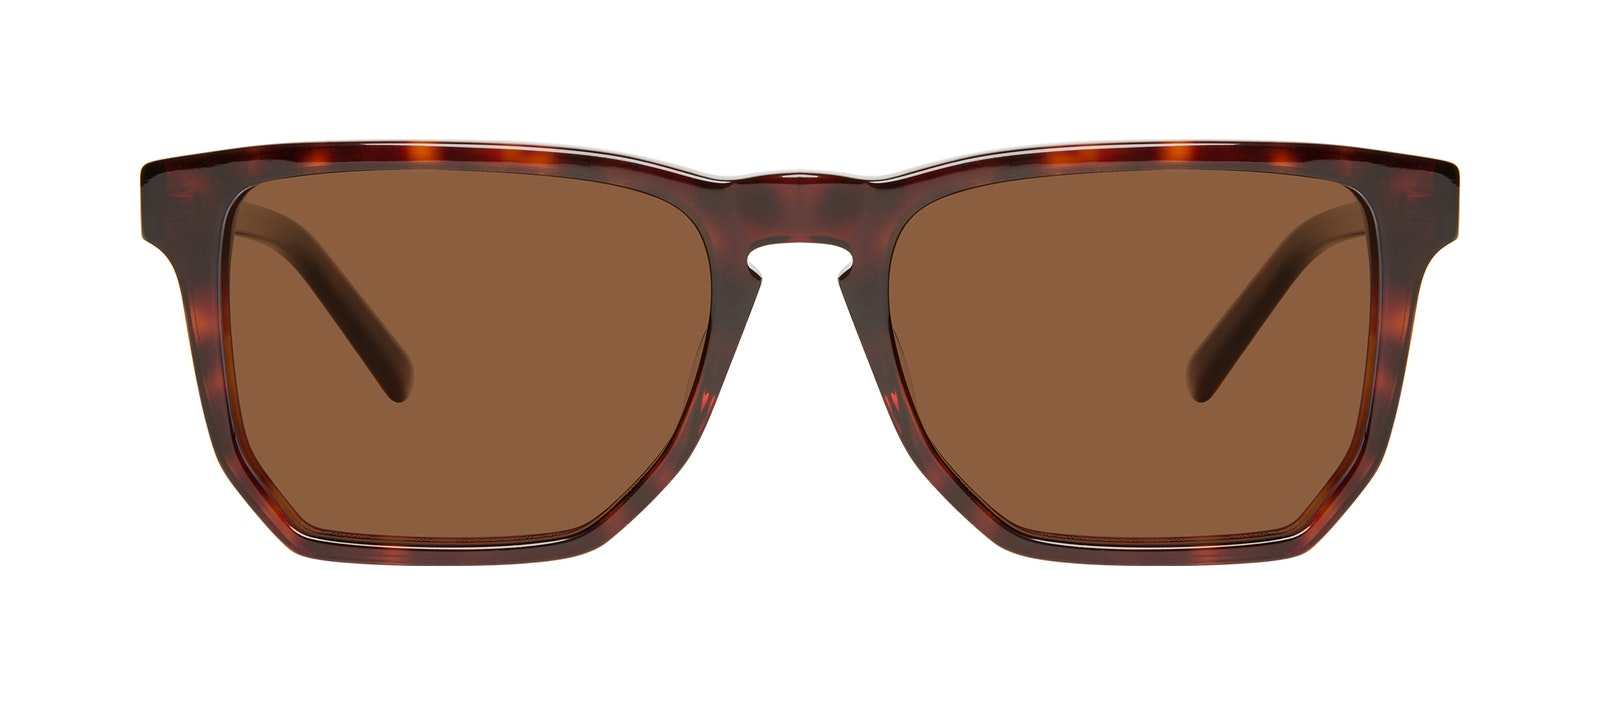 Affordable Fashion Glasses Square Sunglasses Men Andy Tortoise Front